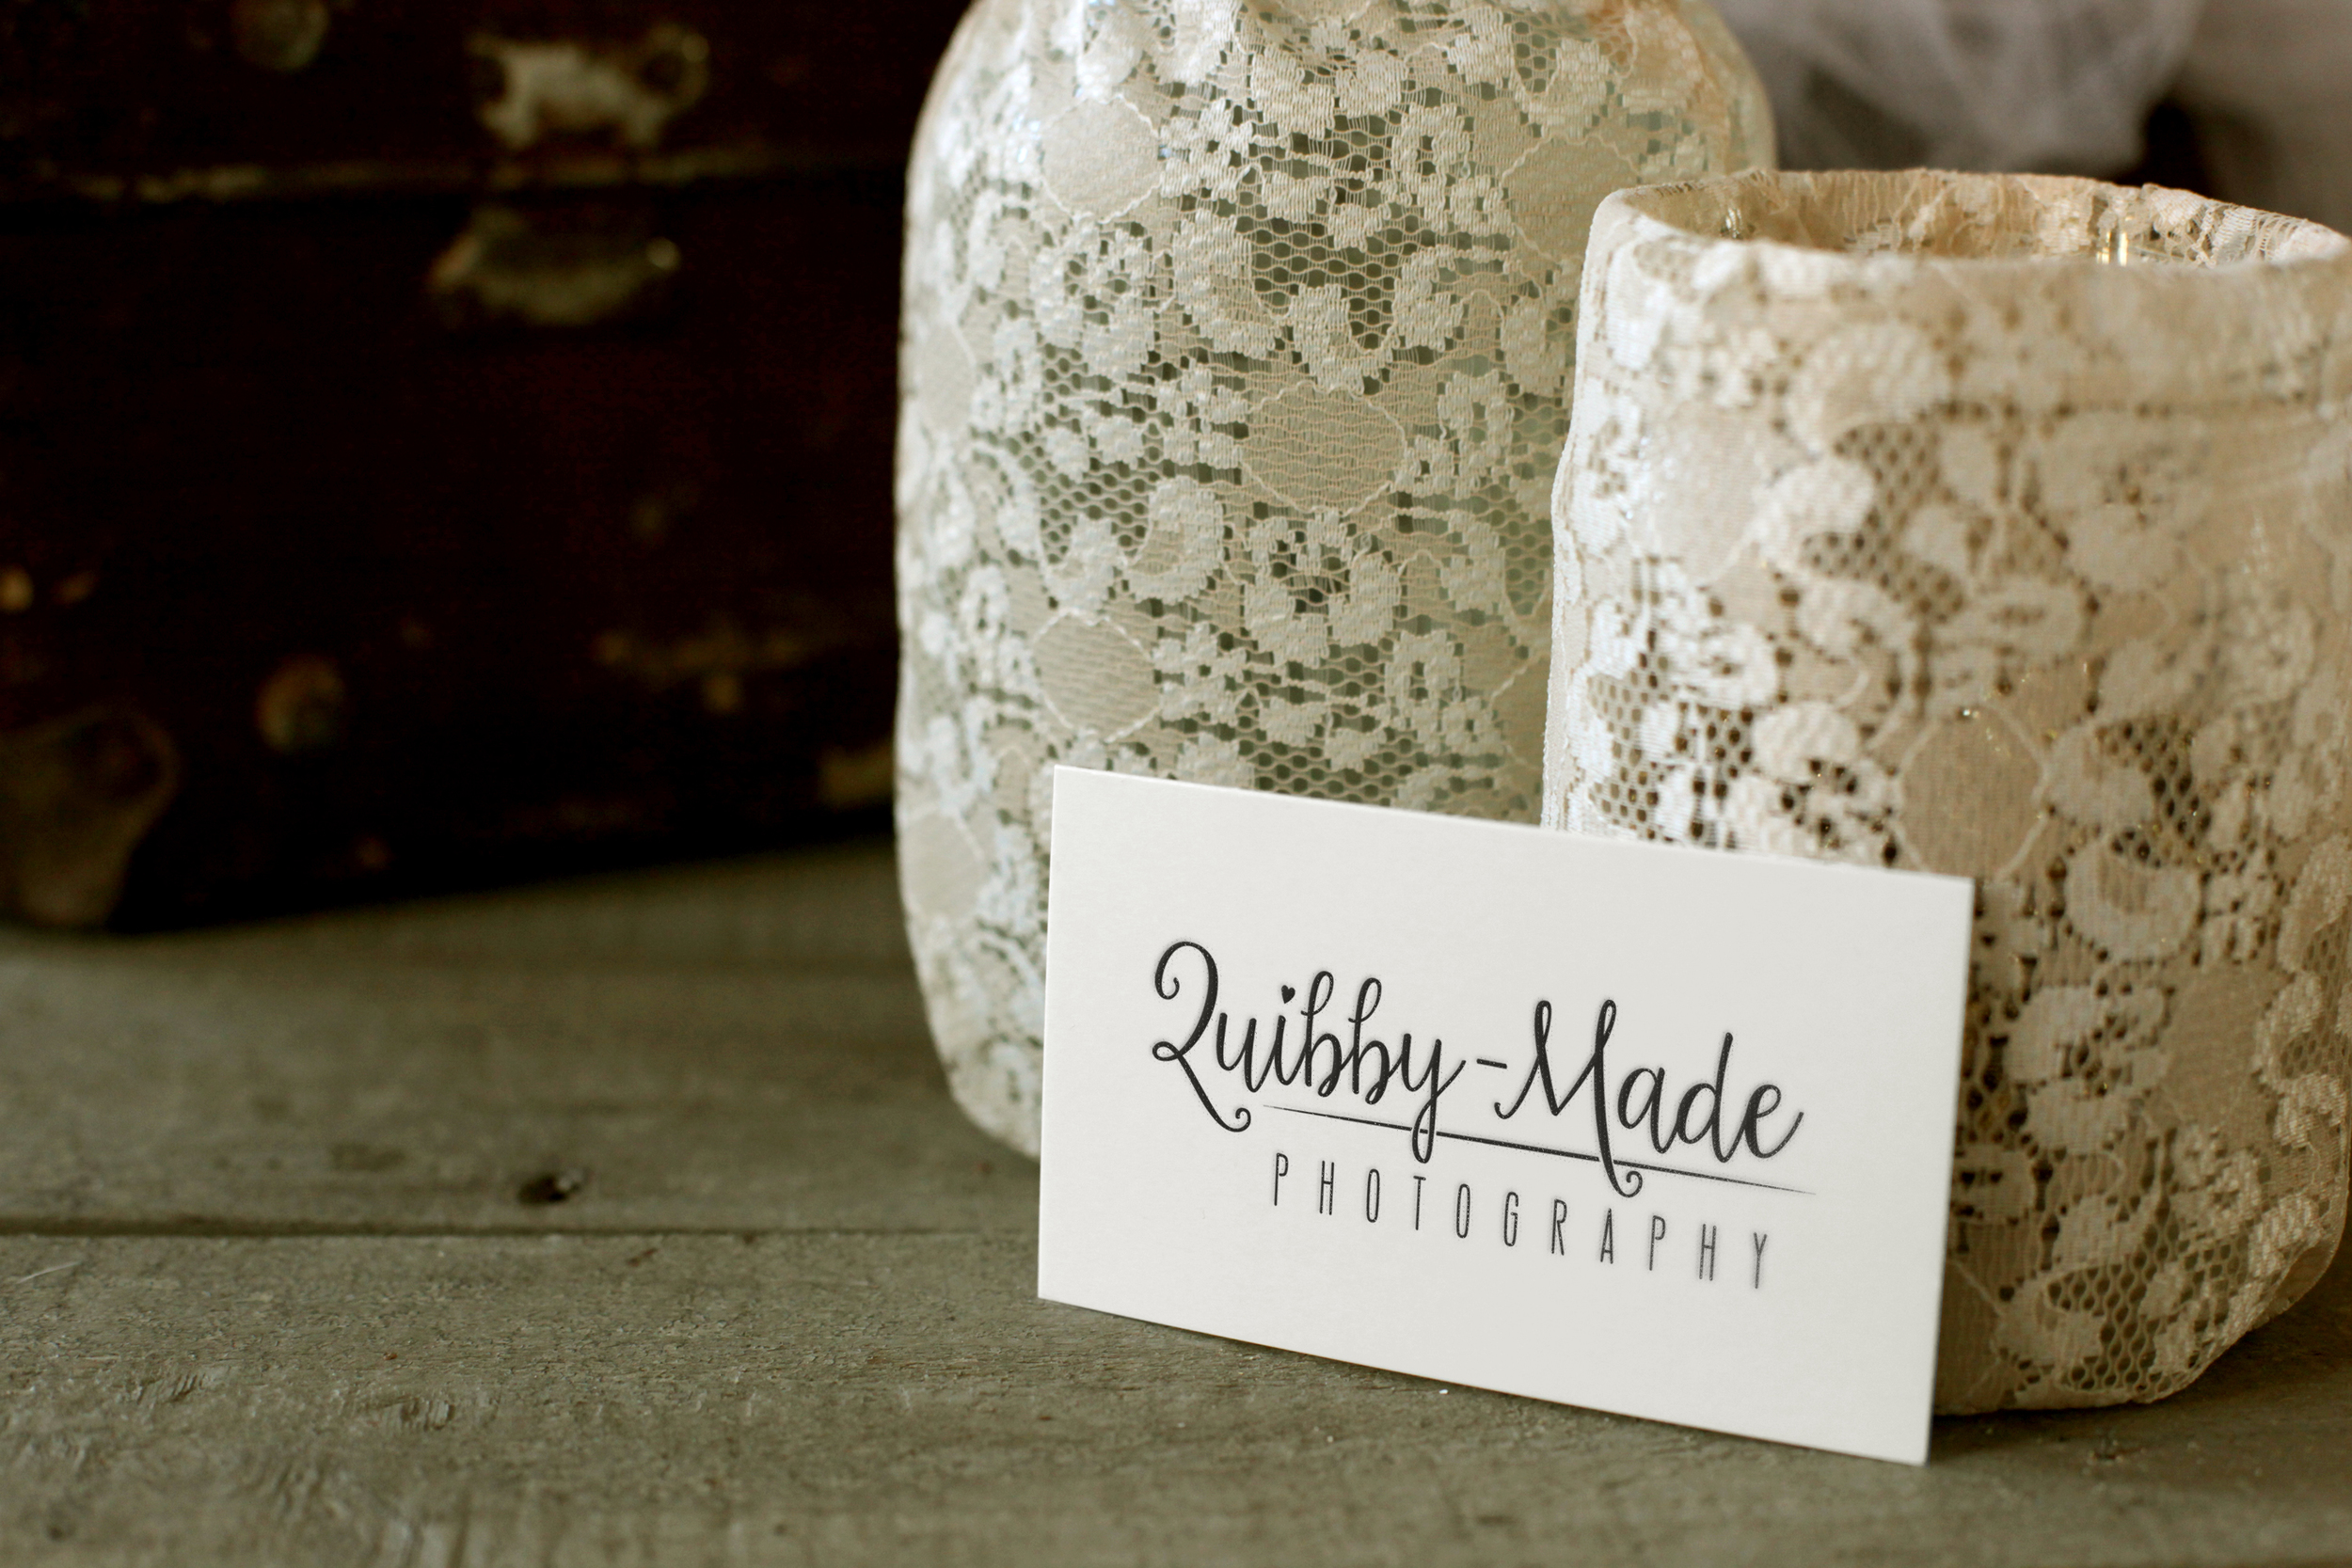 Quibby-made Photography Logo